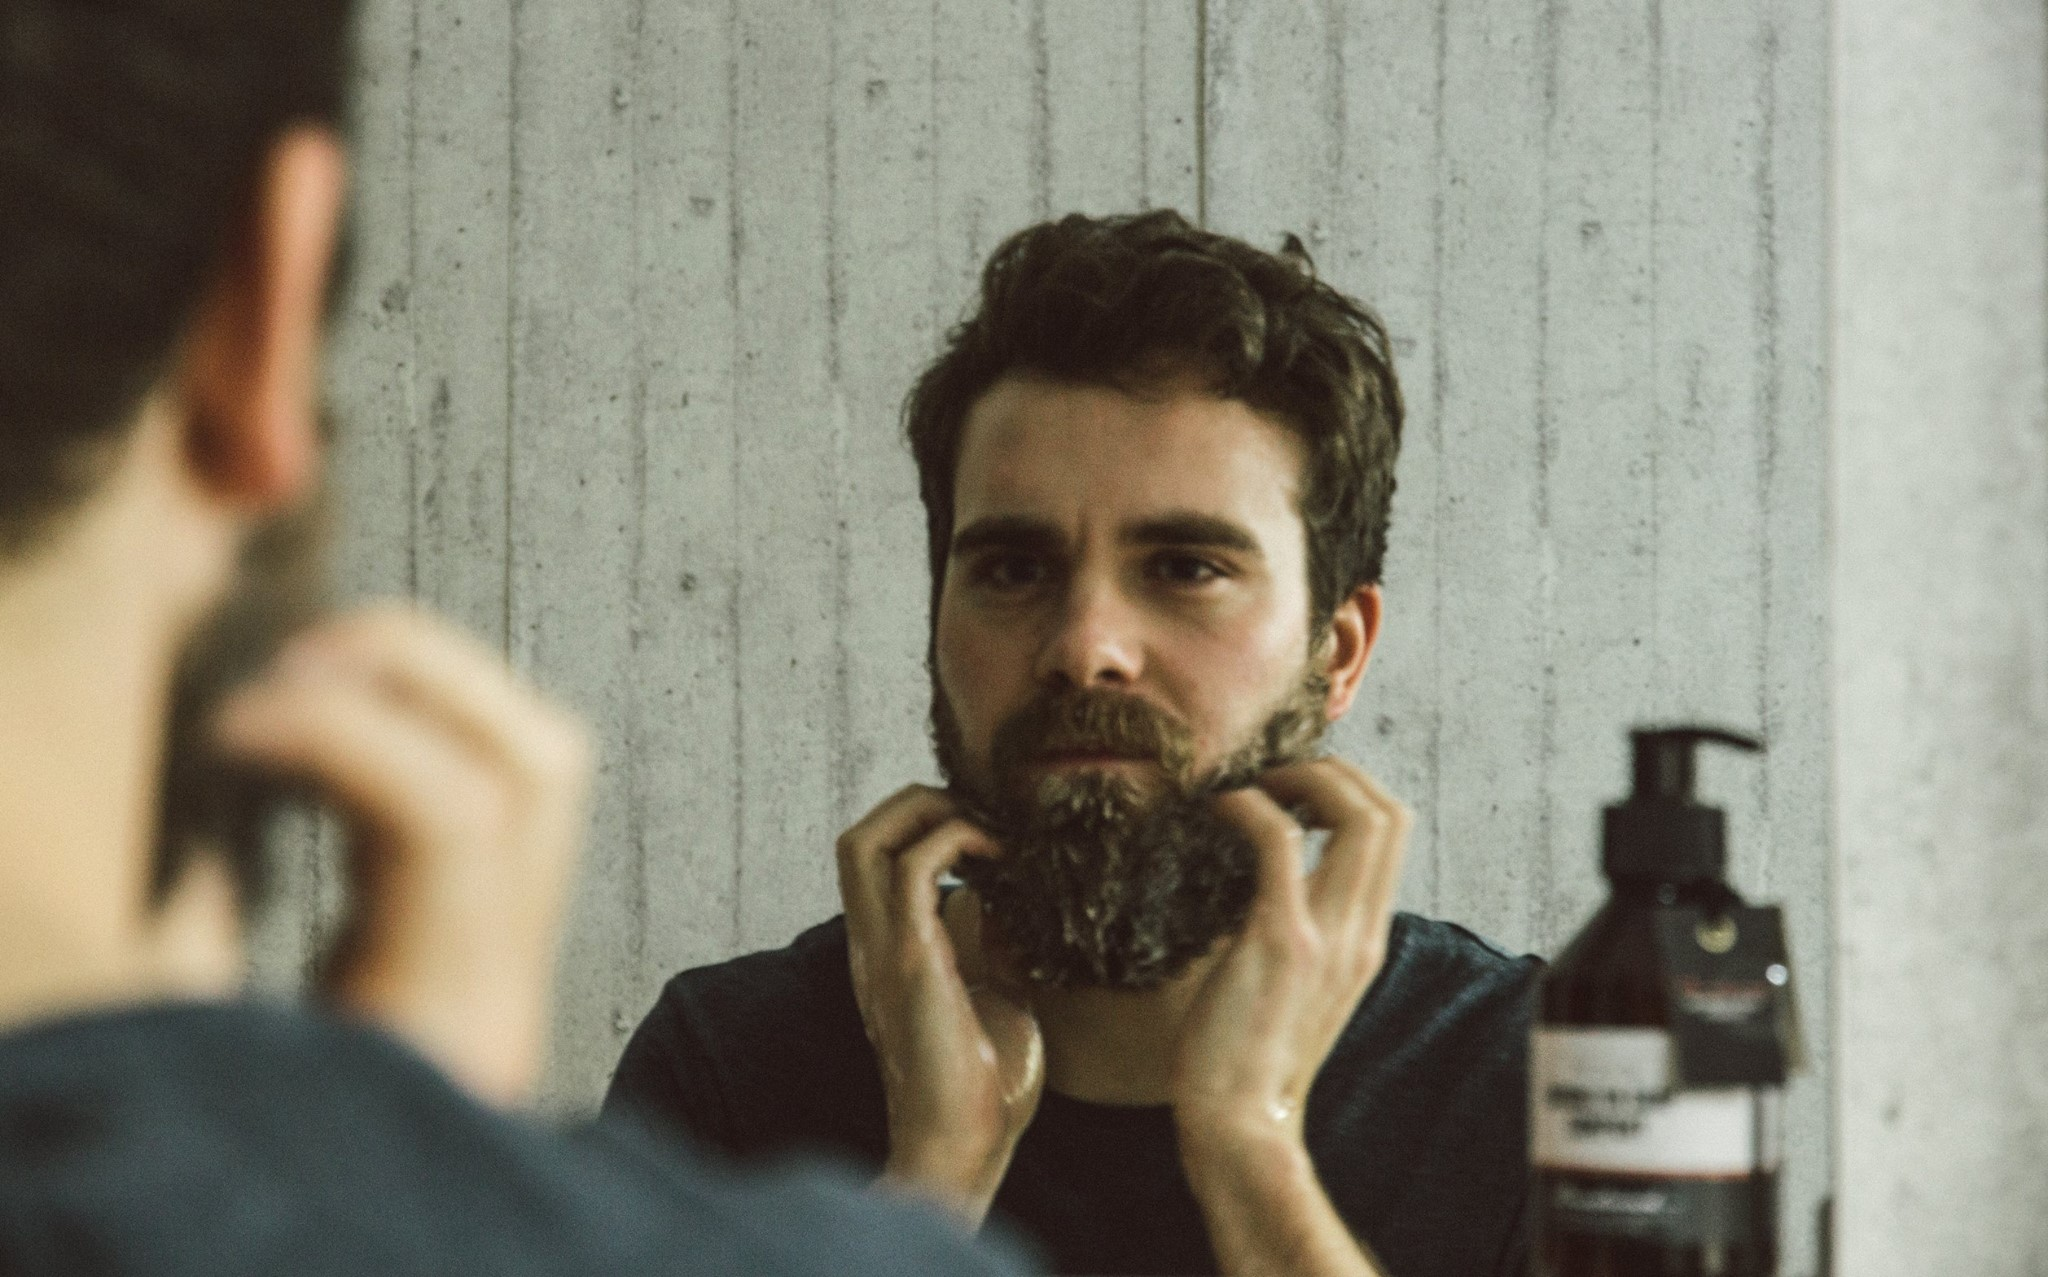 Sahmpoing, à barbe